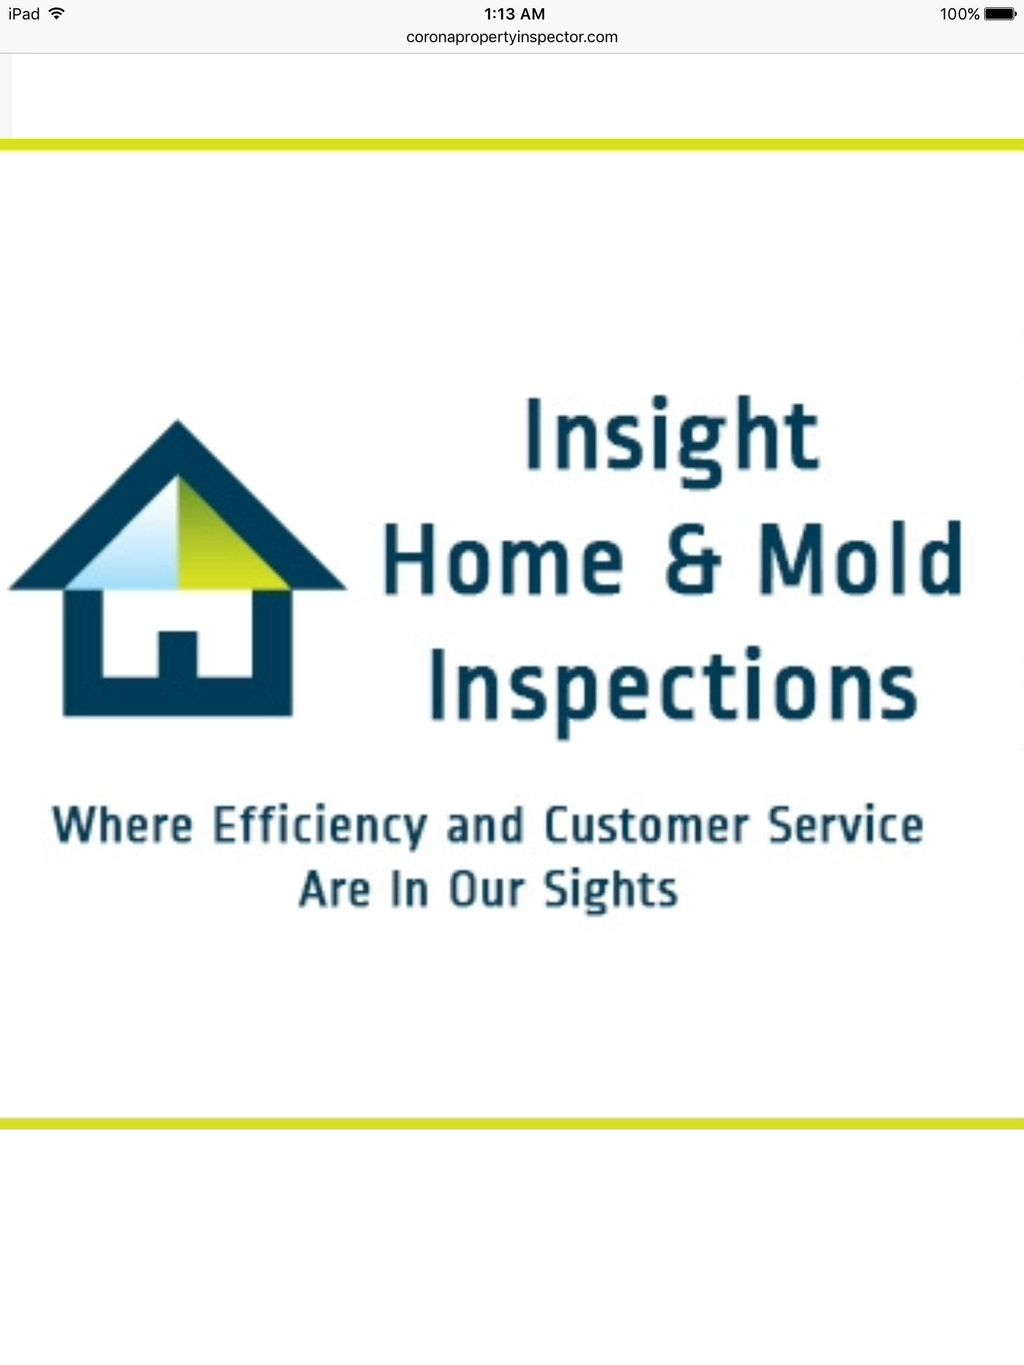 Insight Home and Mold Inspections